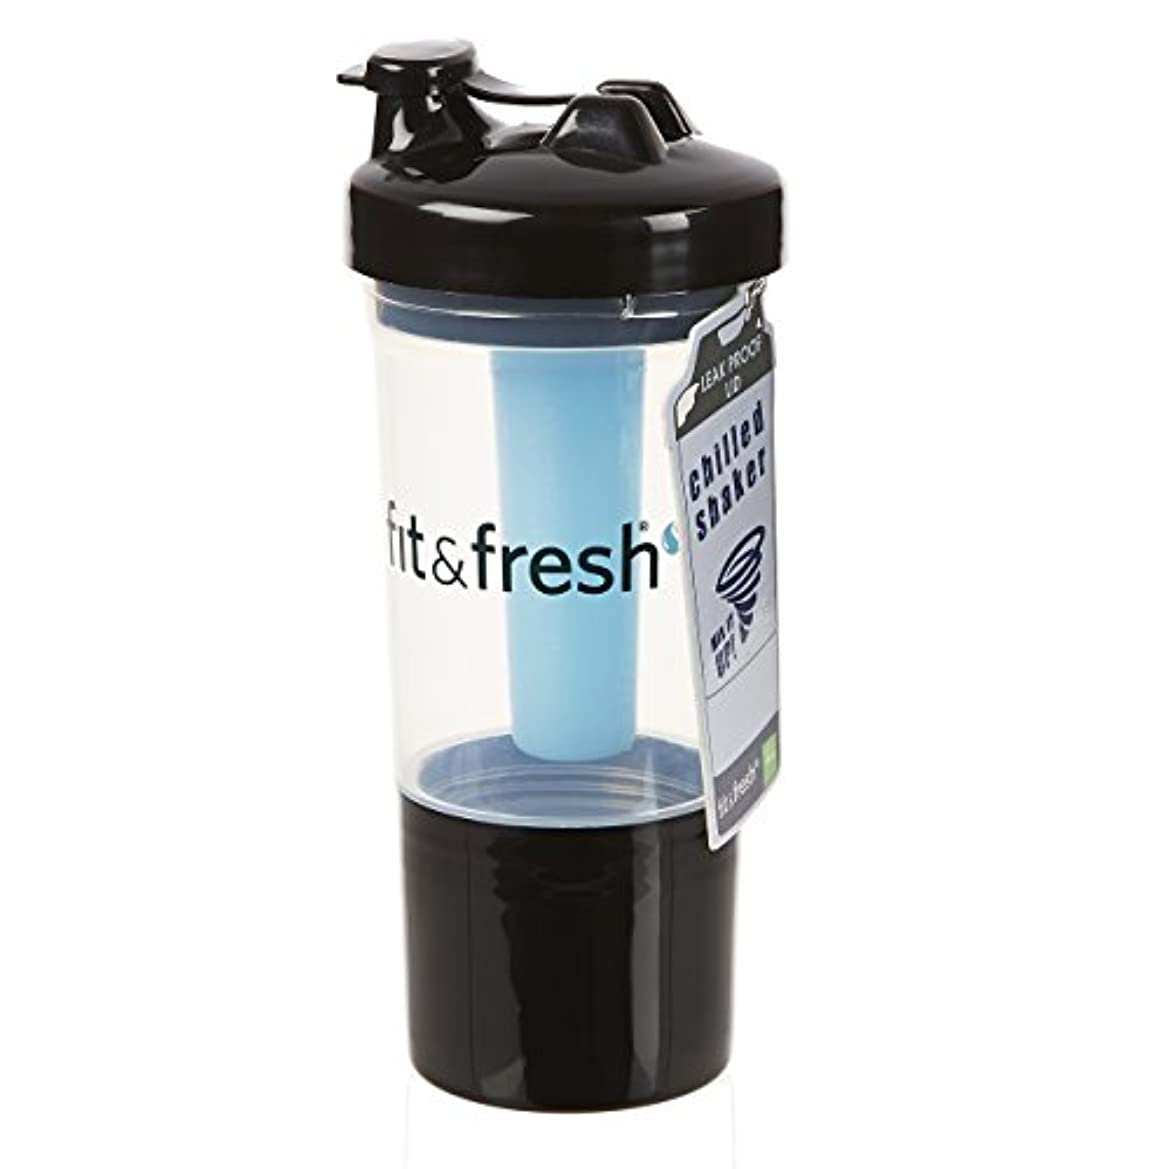 馬鹿穿孔する装置Fit & Fresh, CleanTek, Shaker Cup with Ice Wand Agitator & Storage Cup, 1 Cup